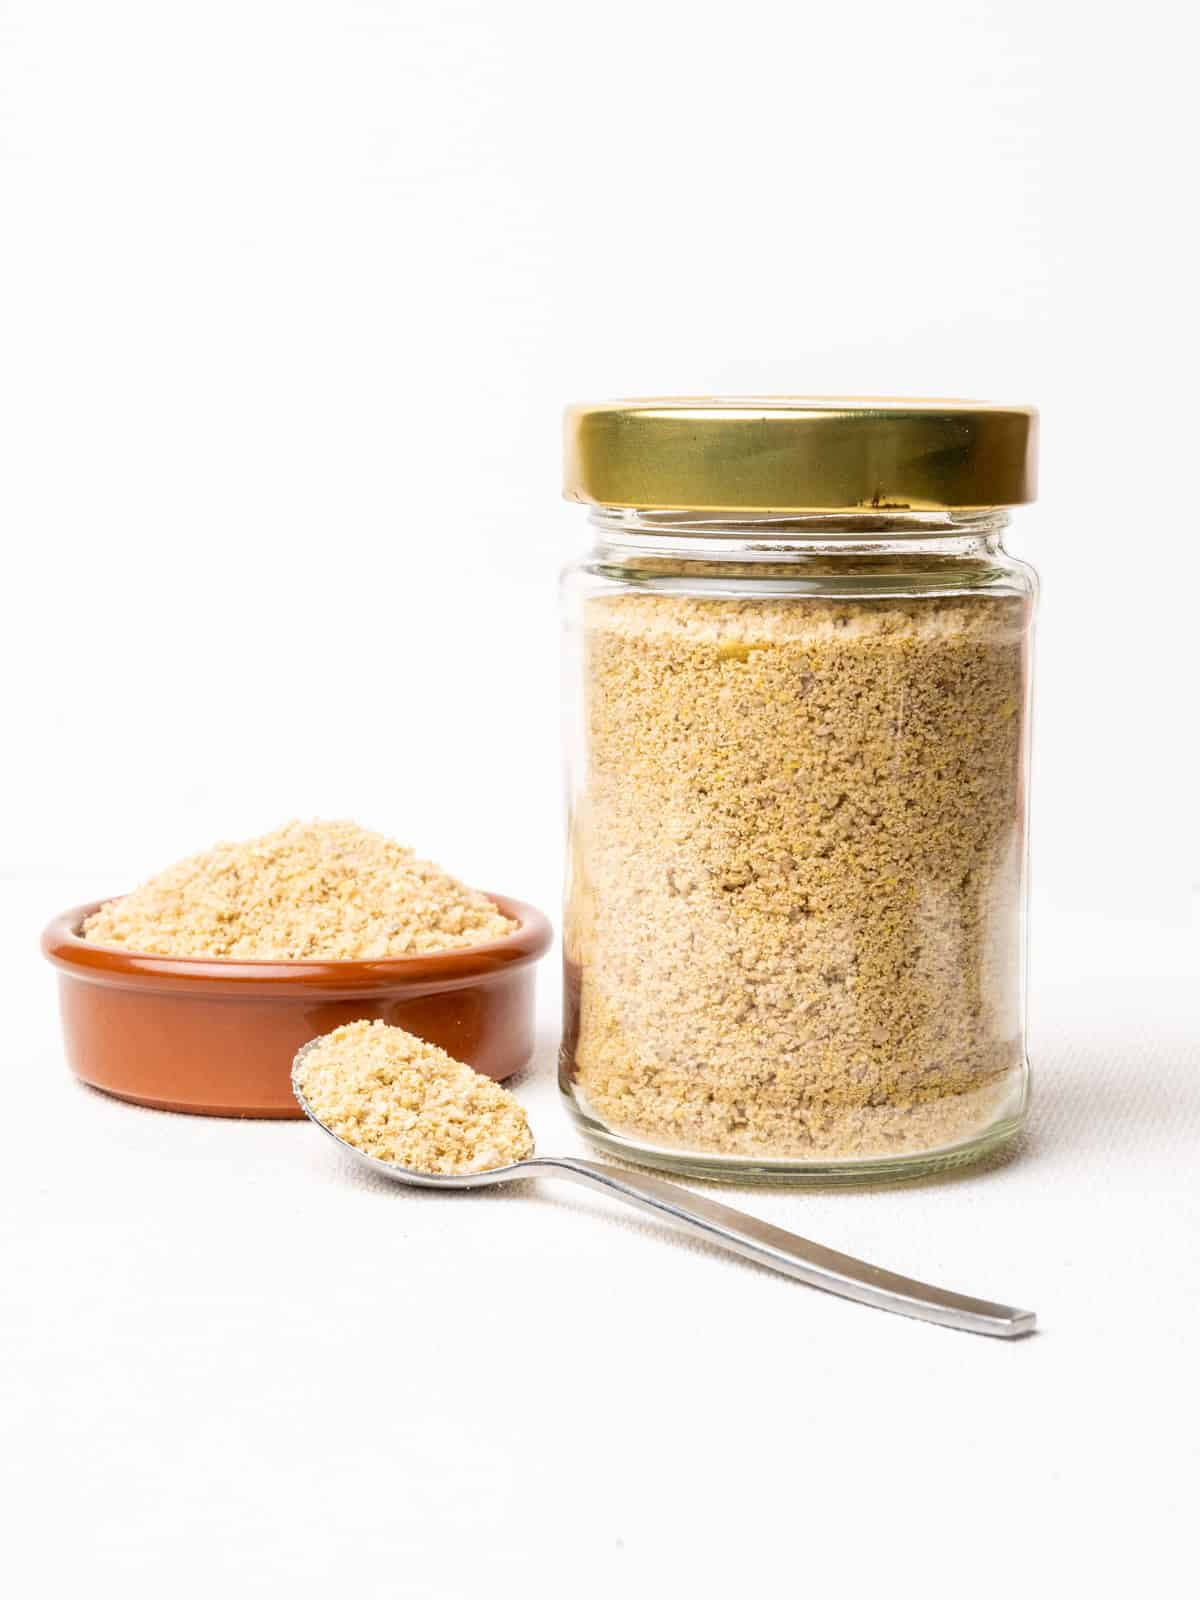 A jar, dish and spoon full of ground, pale yellow vegan alternative to parmesan cheese.